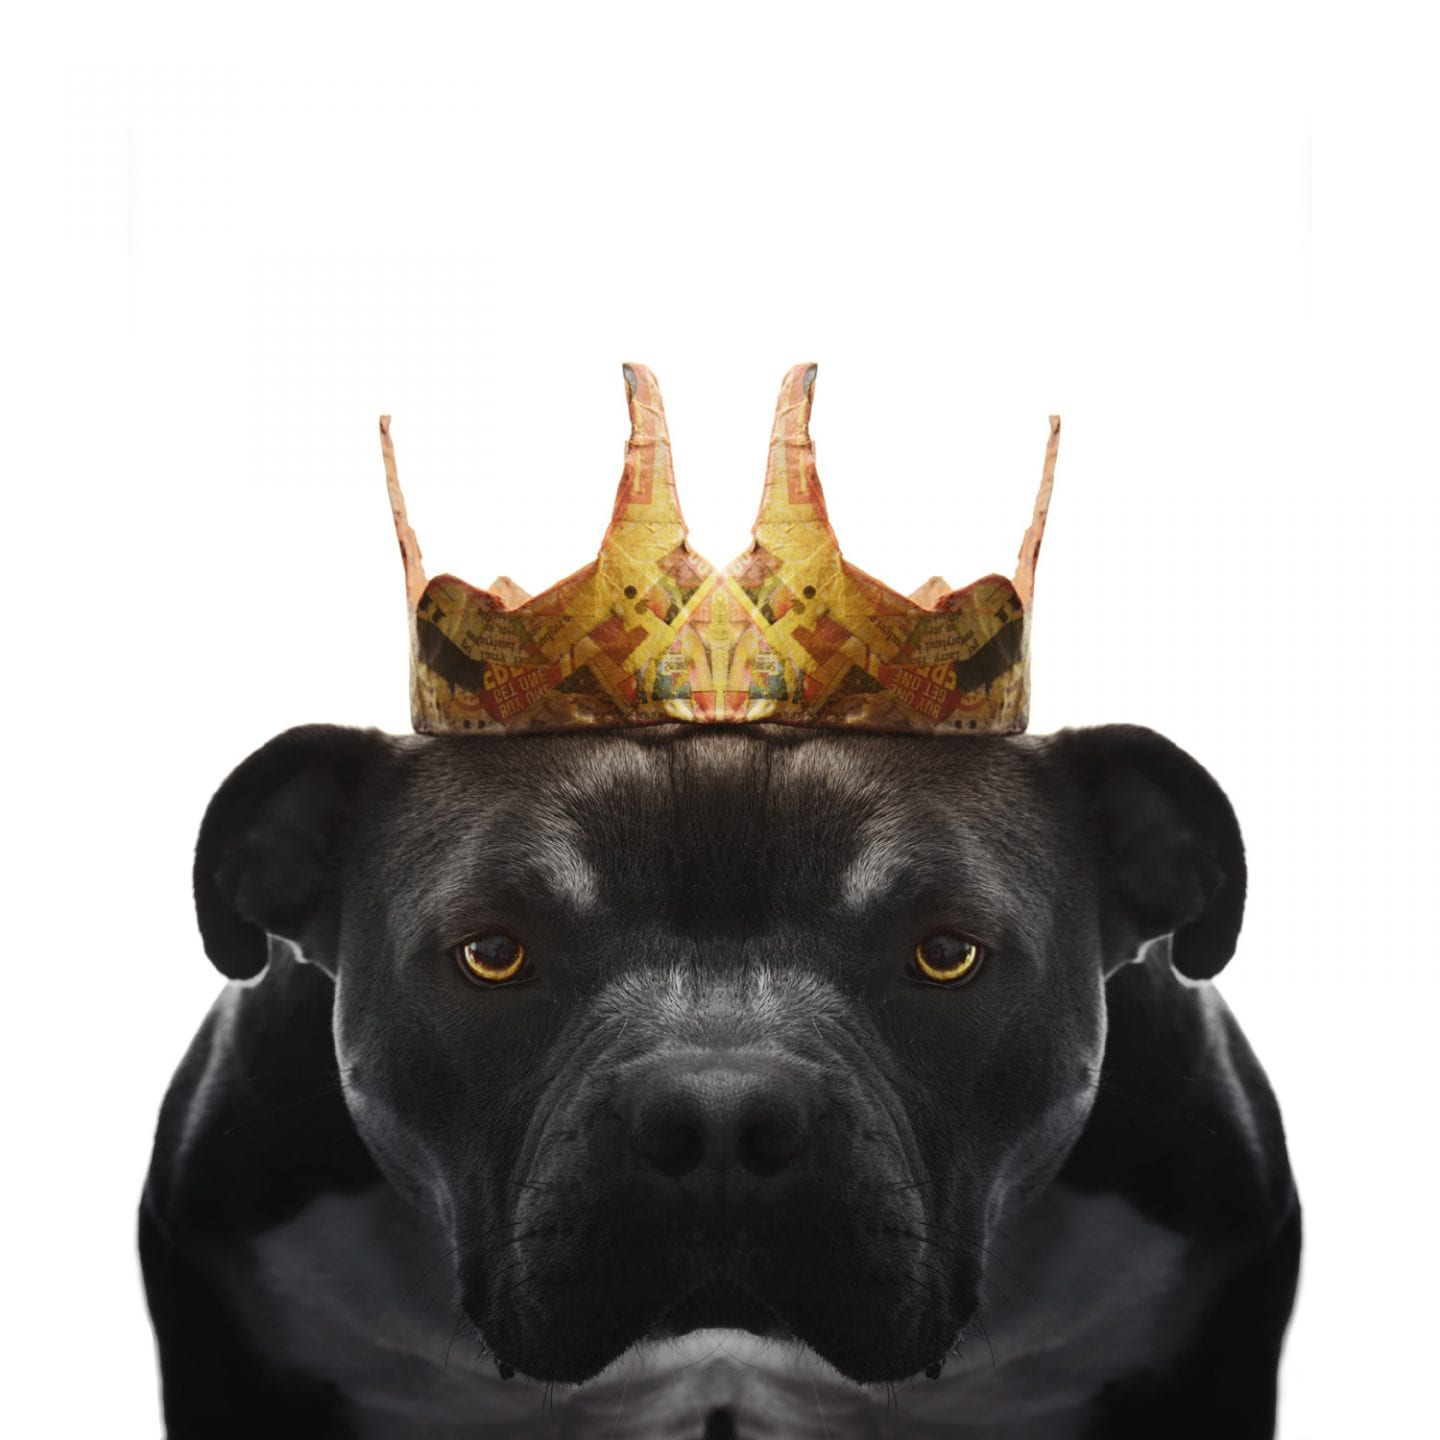 portrait of an angry black bulldog wearing a golden crown